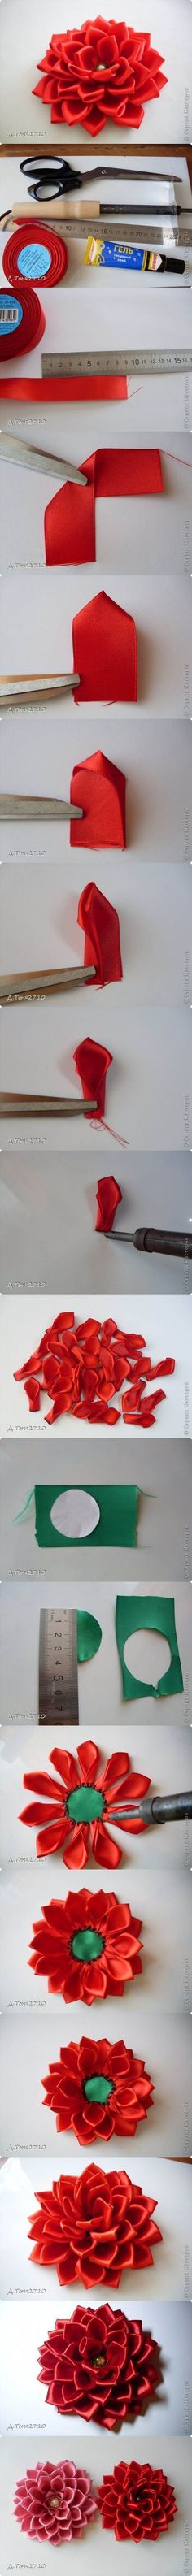 DIY Satin Ribbon Dahlia Petals | iCreativeIdeas.com LIKE Us on Facebook ==> https://www.facebook.com/icreativeideas